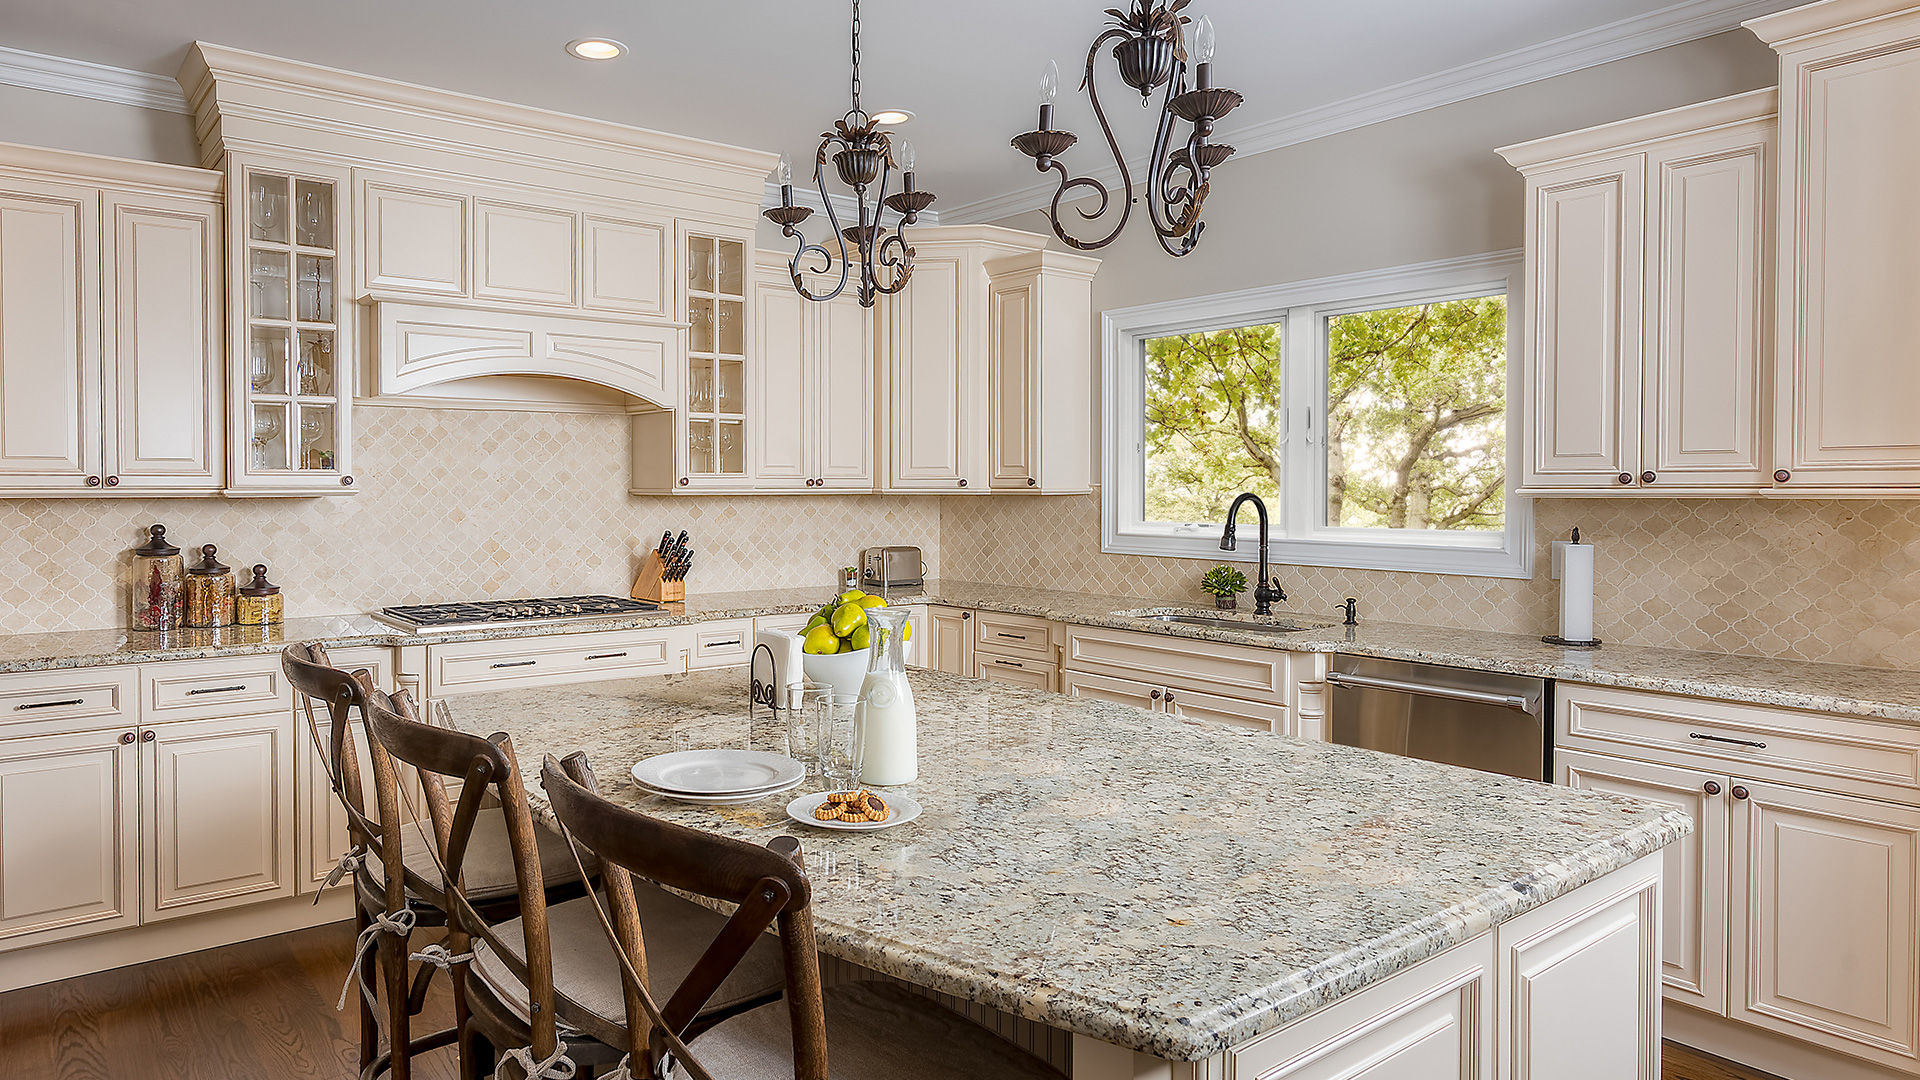 The Best Kitchen Ideas For Your Home Top Design Trends